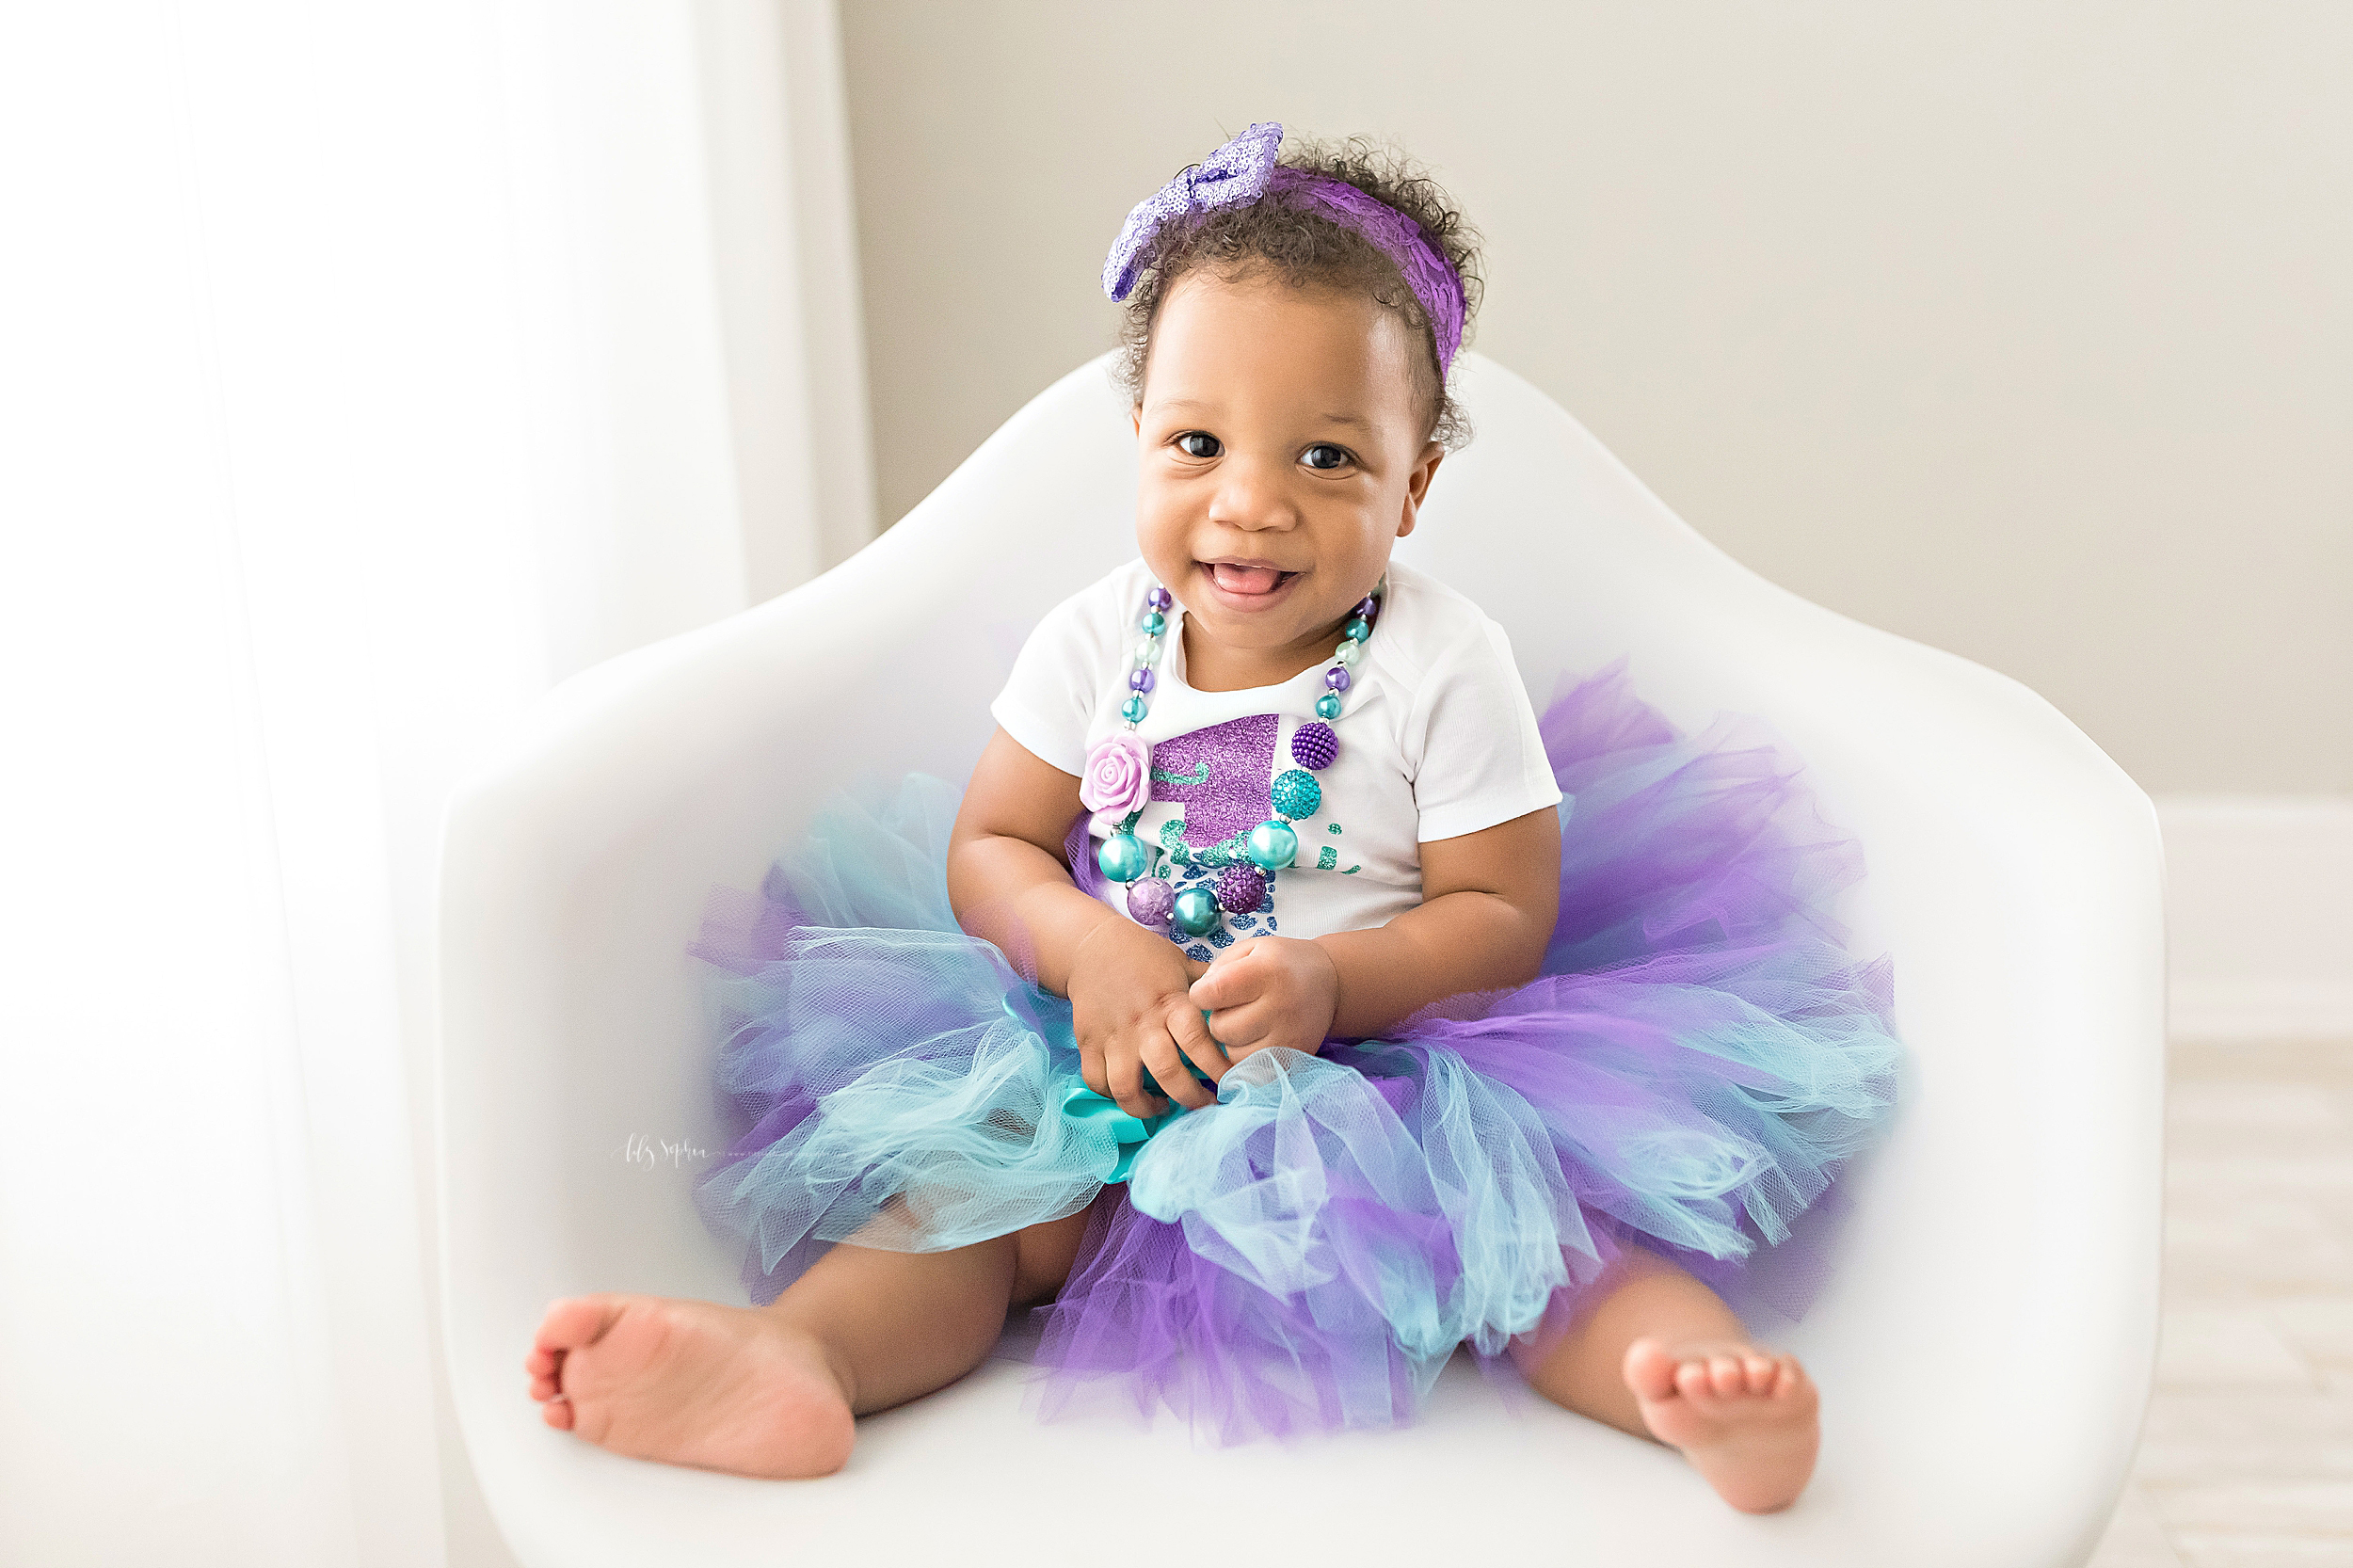 atlanta-buckhead-brookhaven-decatur-lily-sophia-photography--photographer-portraits-grant-park-intown-first-birthday-tutu-cake-smash_0994.jpg